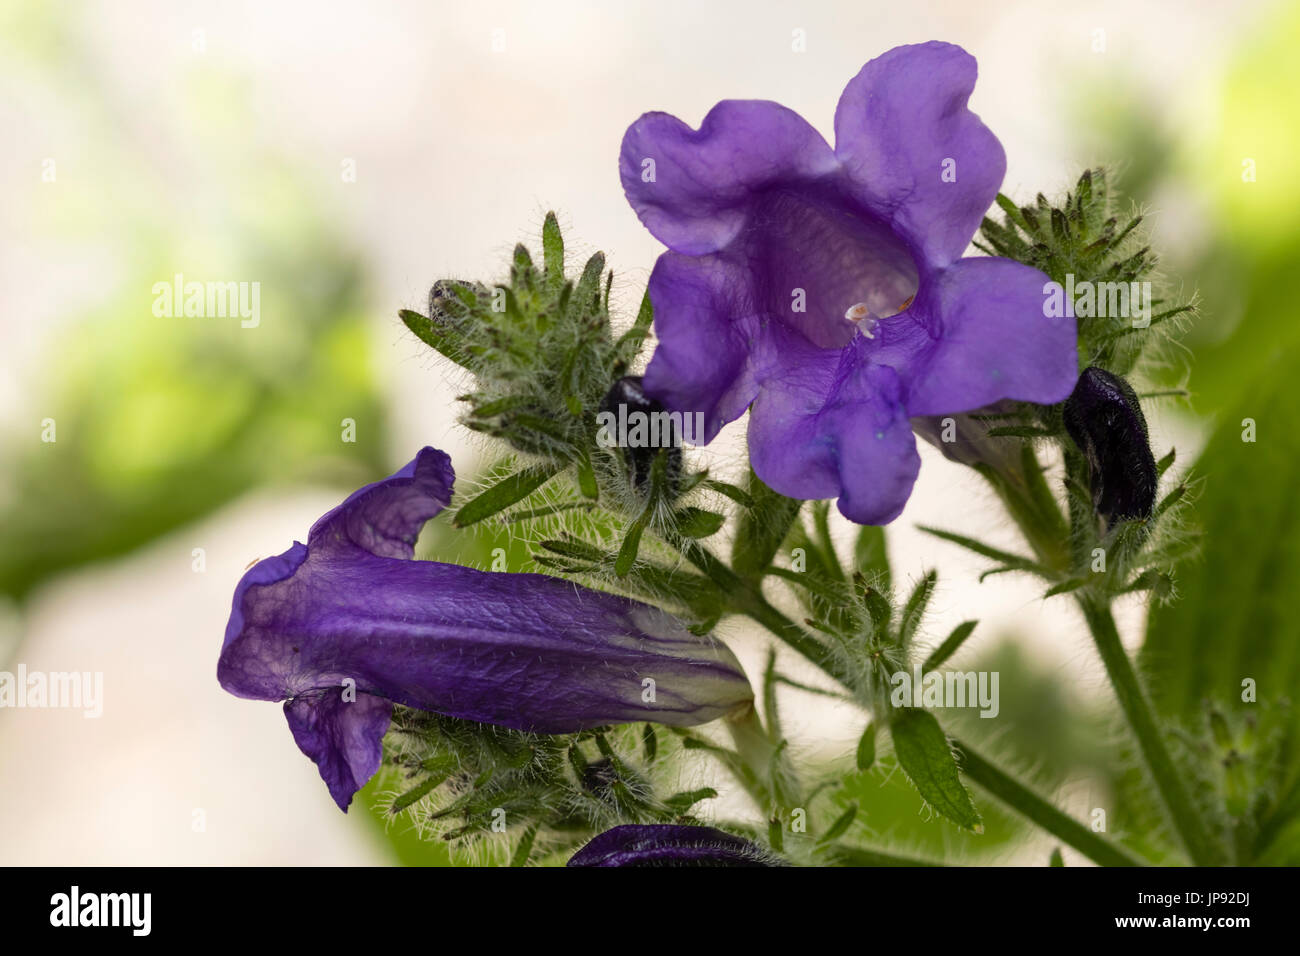 Blue, tubular flowers of the long flowering herbaceous perennial, Strobilanthes penstemonoides - Stock Image